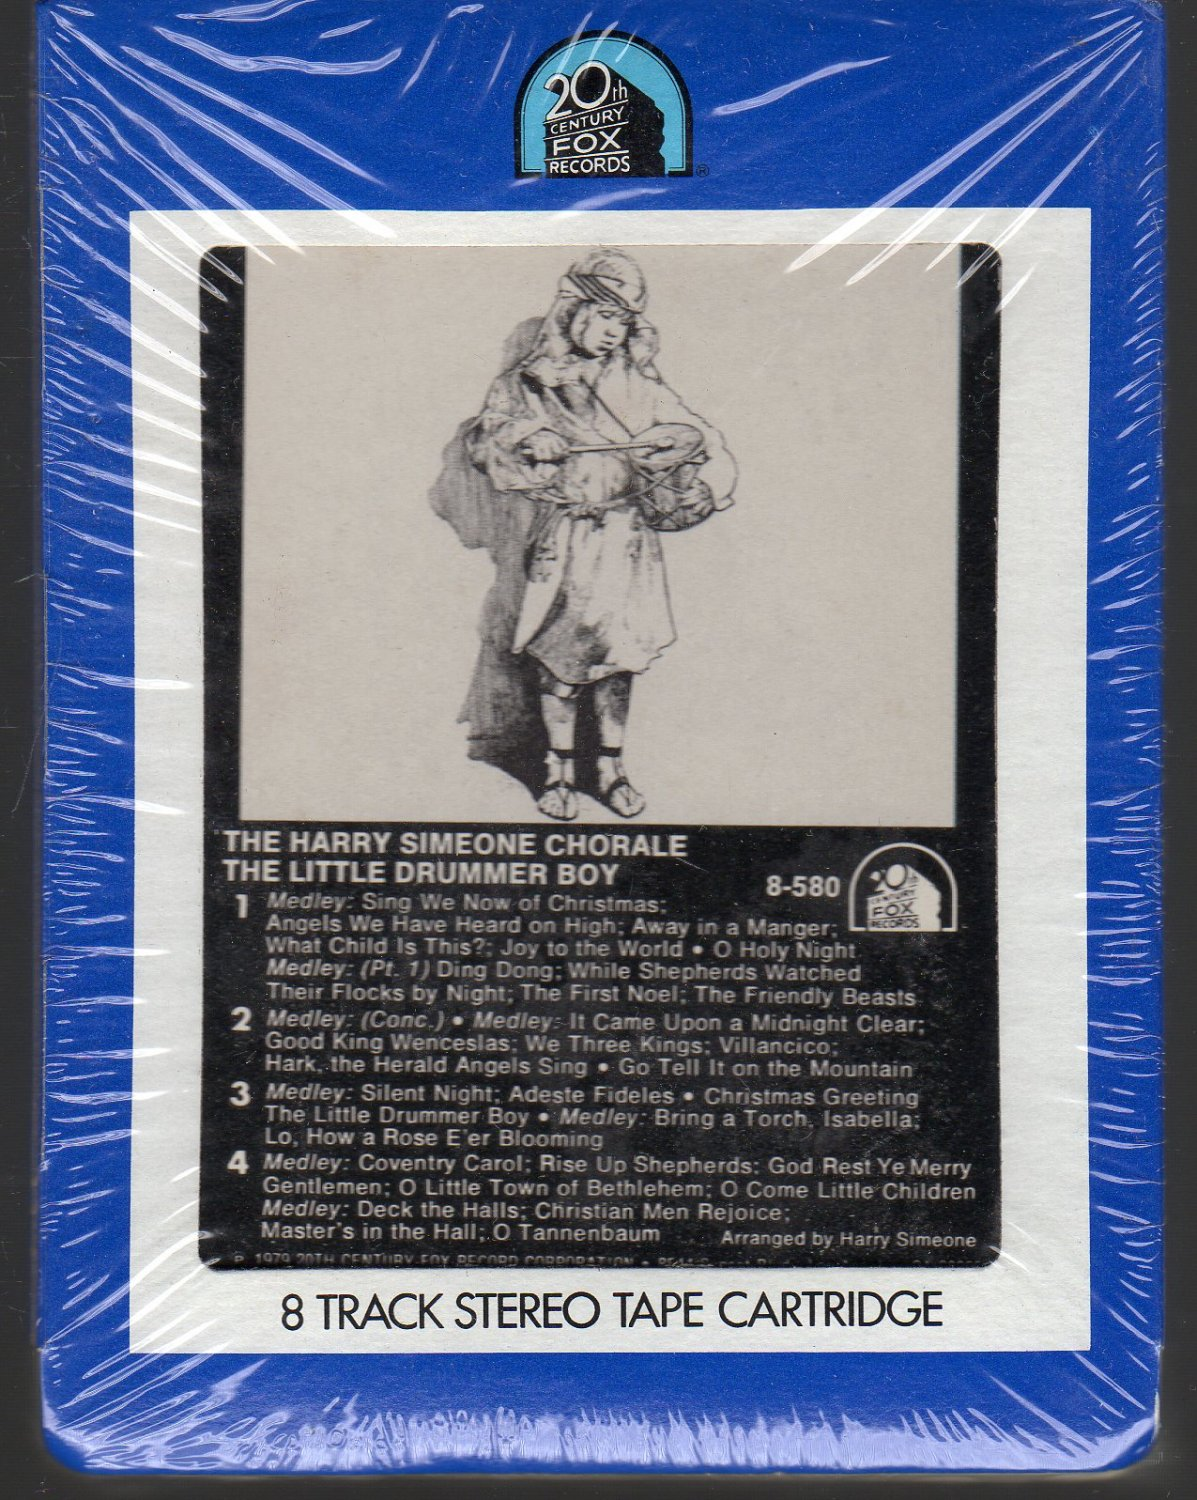 The Harry Simeone Chorale - The Little Drummer Boy (20th Century) Sealed 8-track tape